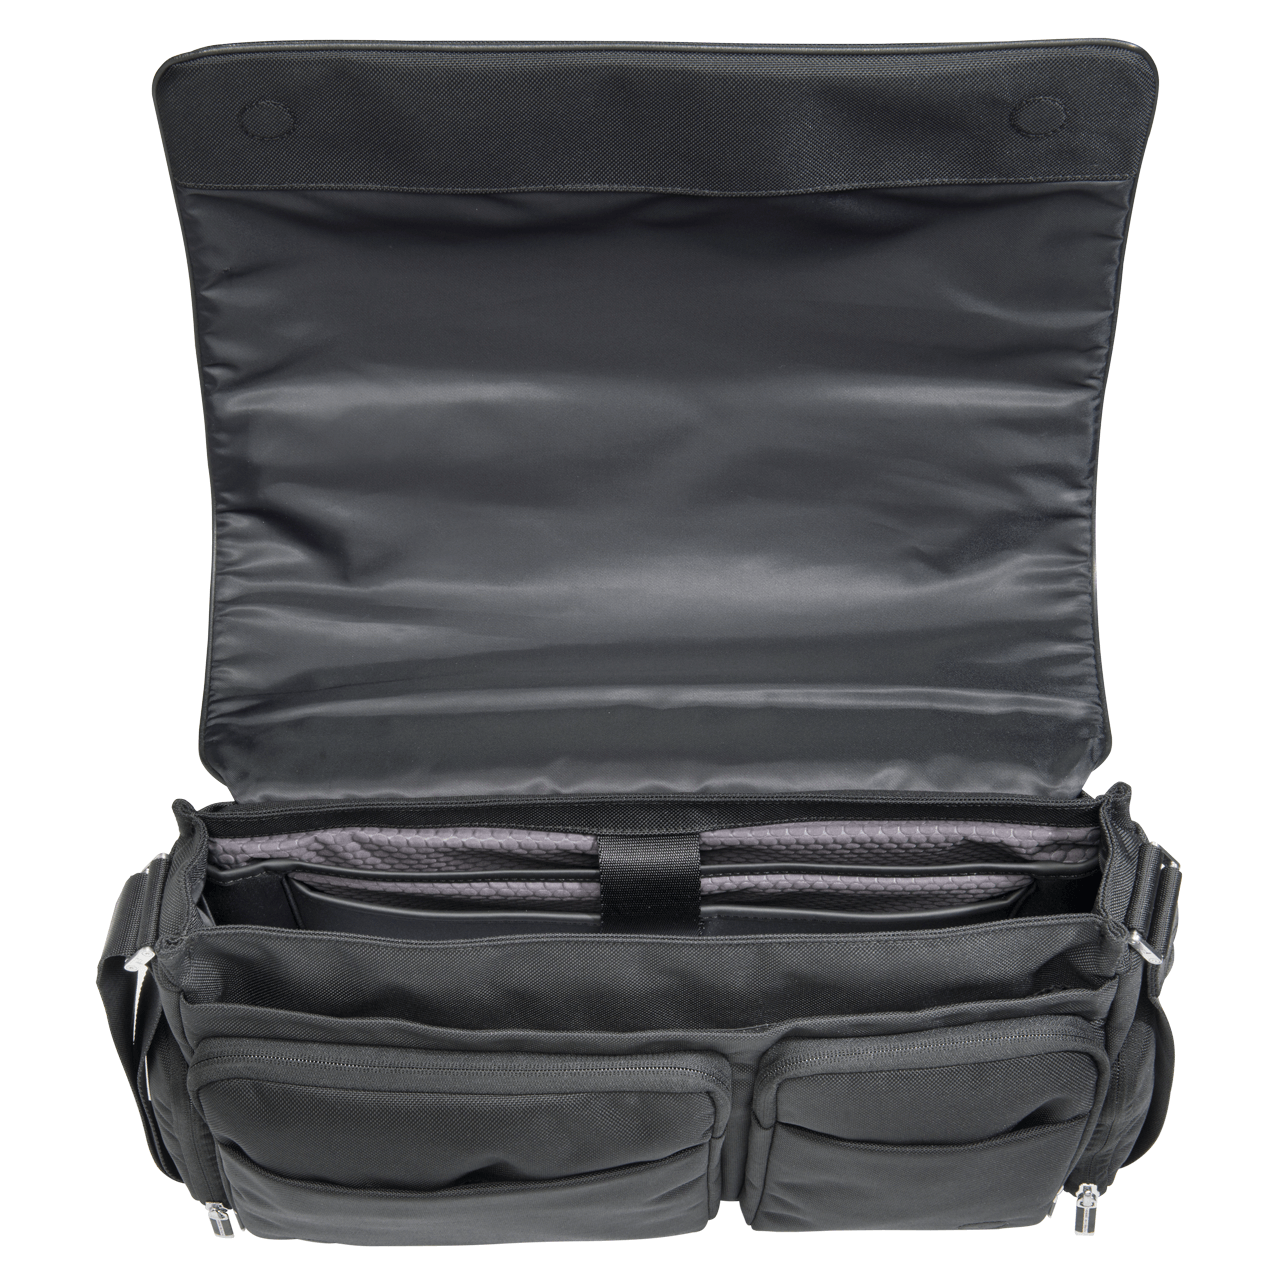 ROADSTER SOFTCASE SERIES SHOULDERBAG L FH - фото 2